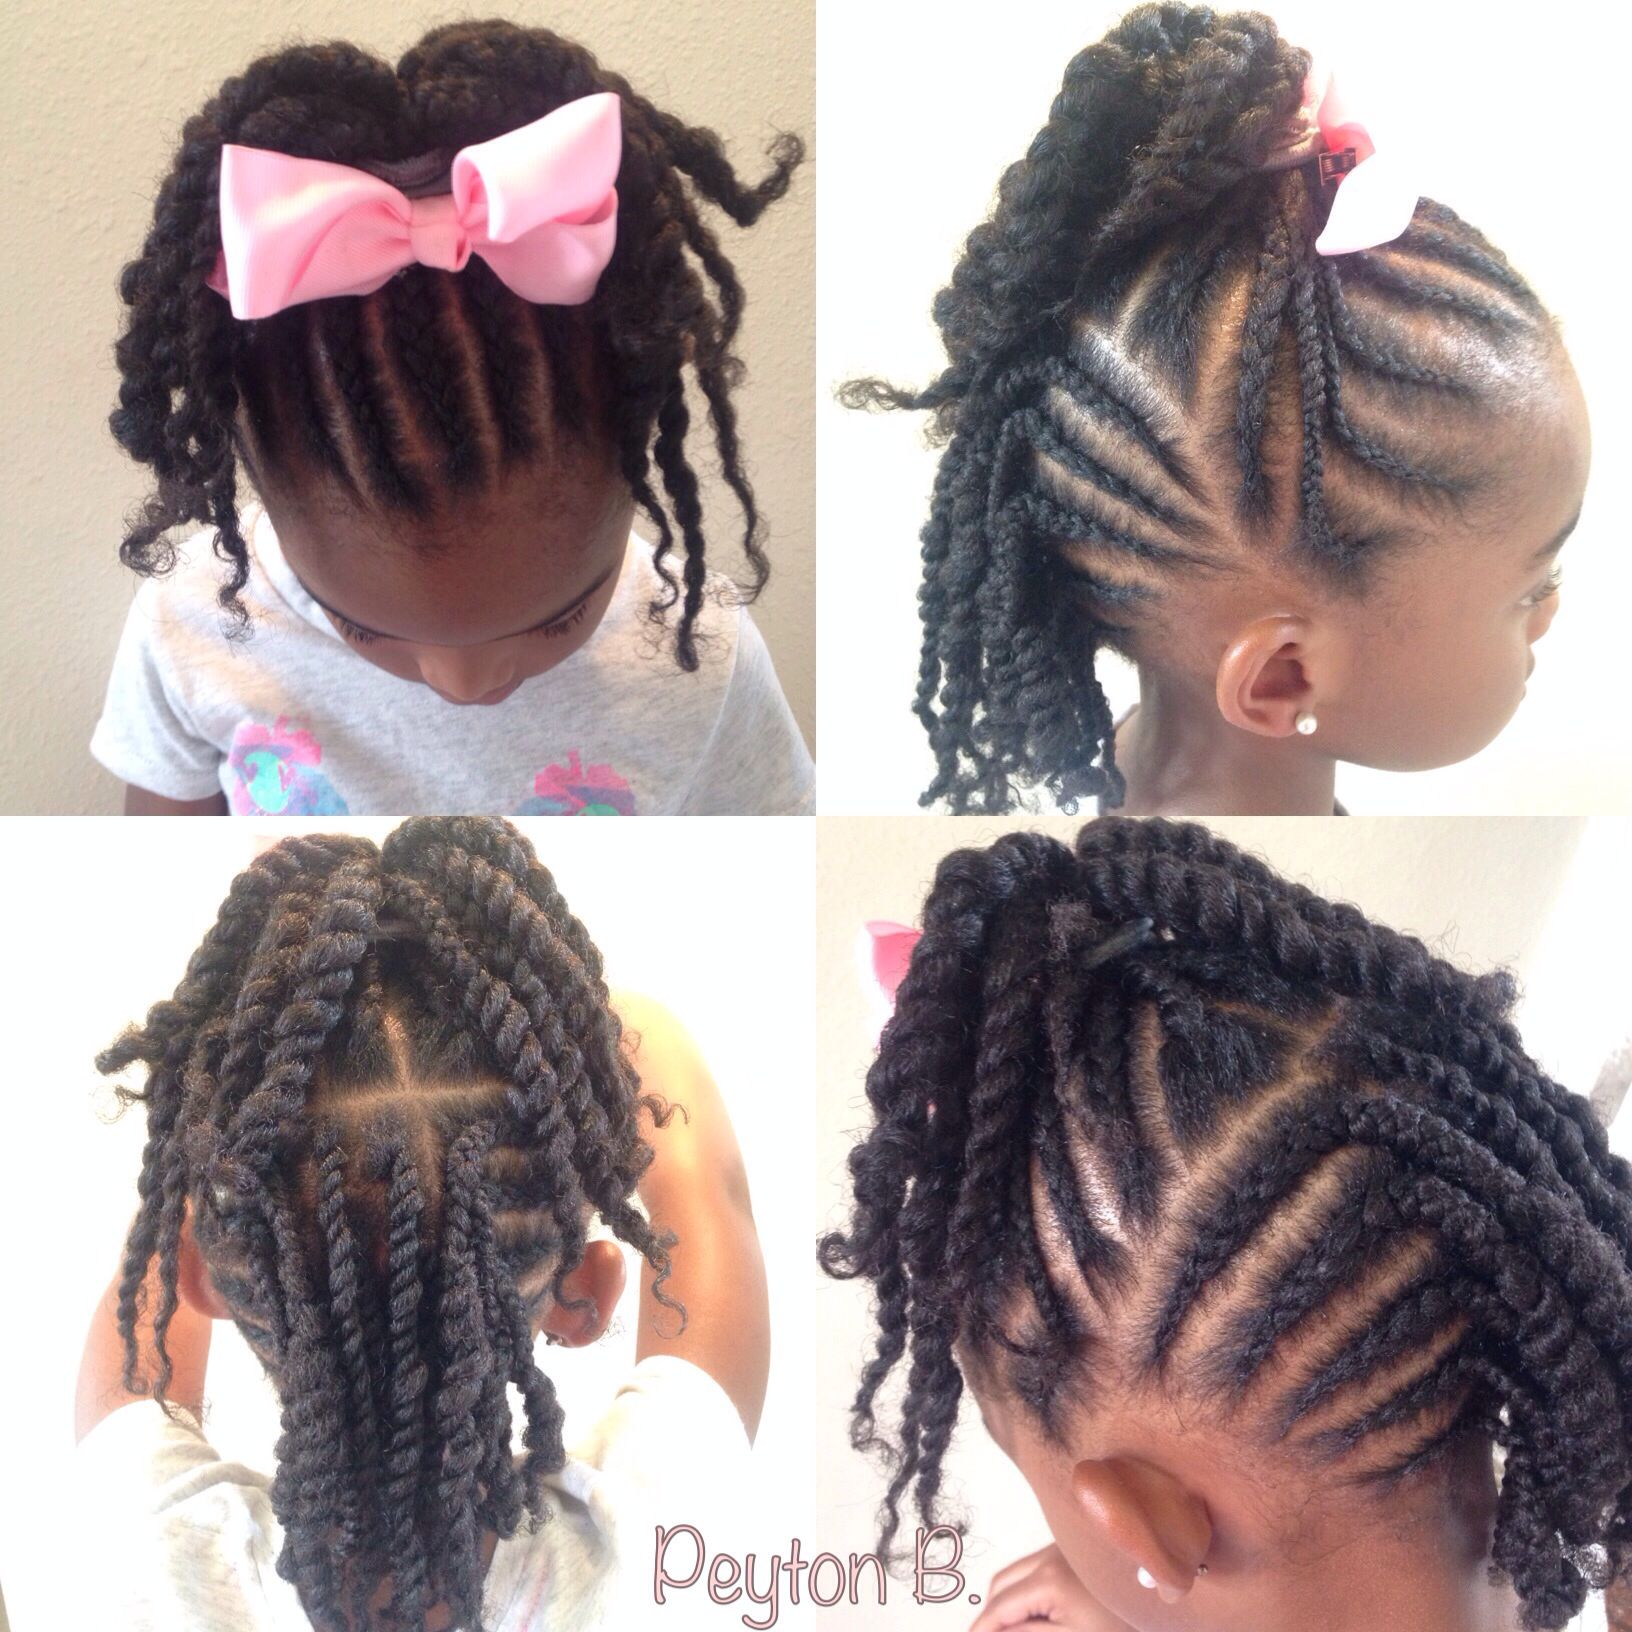 Top: Cornrows with ends twisted up into ponytail. Back: Cornrows + ...